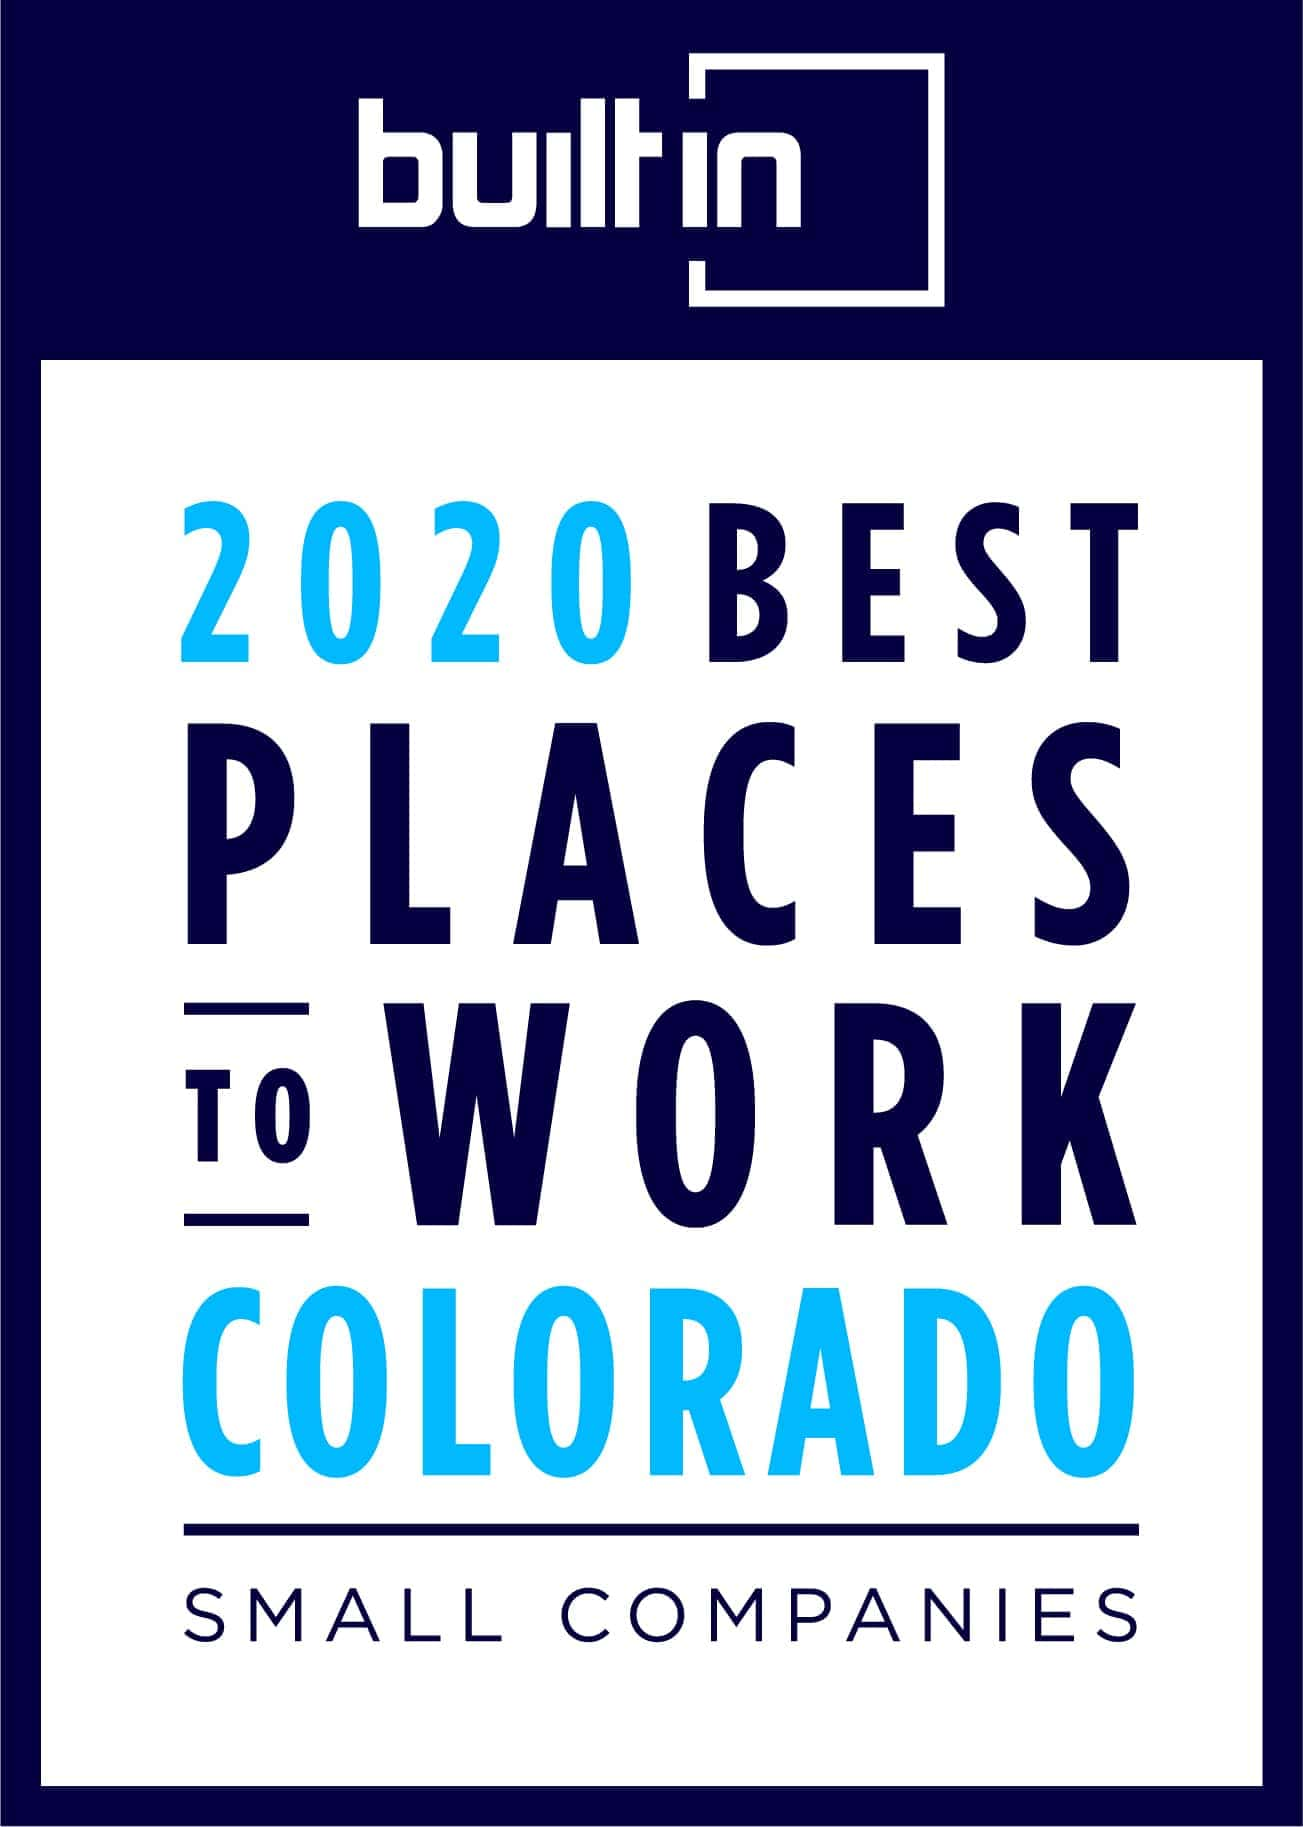 builtin 2020 Best Places to Work Colorado banner